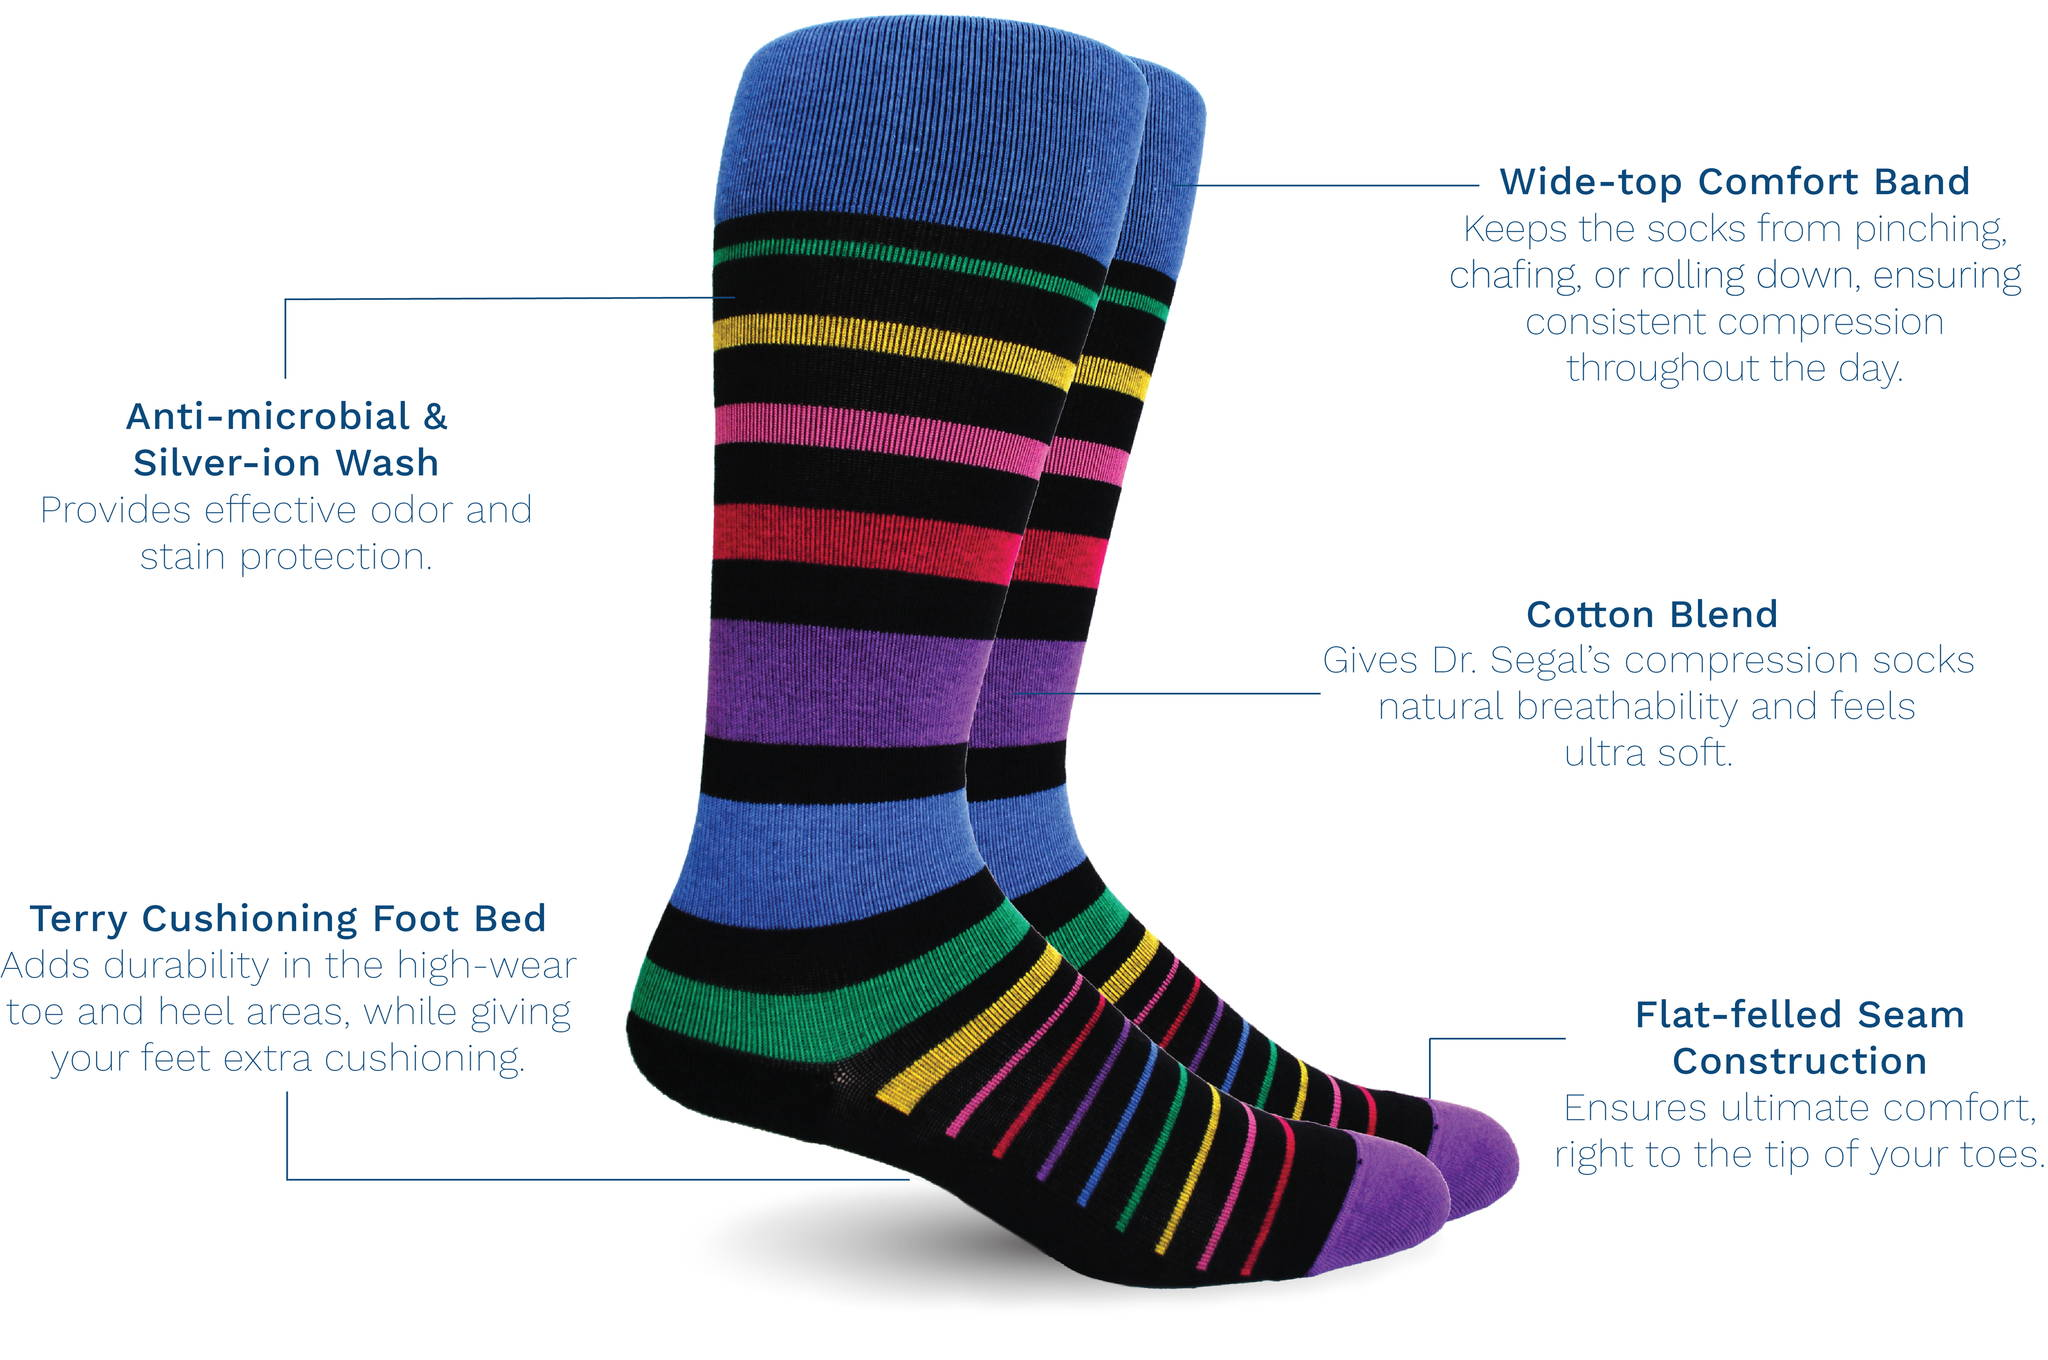 Product photo of compression socks listing benefits: wide-top comfort band, cotton blend, flat-felled seam construction, terry cushioning foot bed, anti-microbial & silver-ion wash.